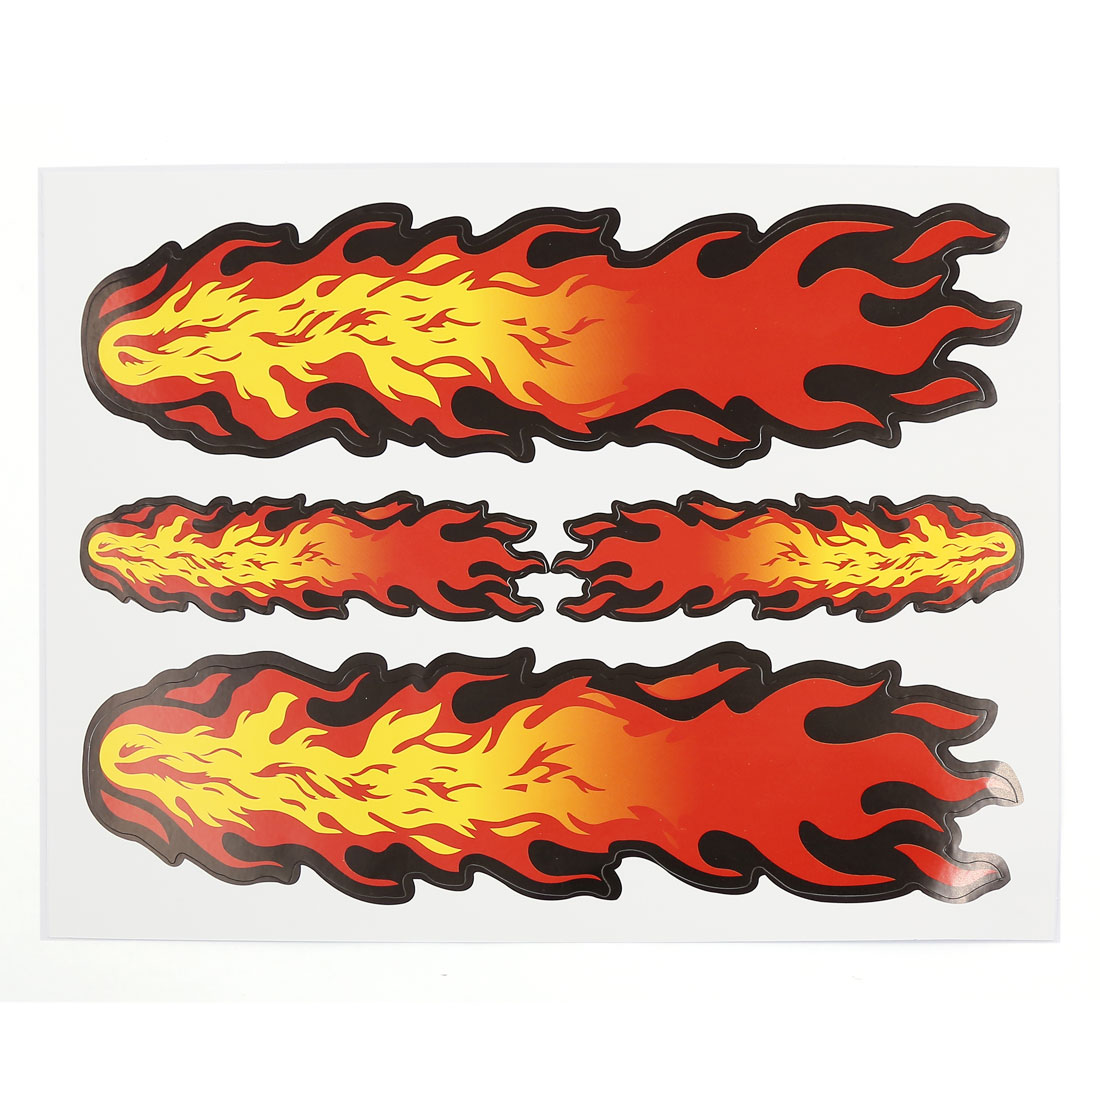 Three Fire Flame Print 2D Style Car Window Door Decal Sticker 20.5cm x 16cm